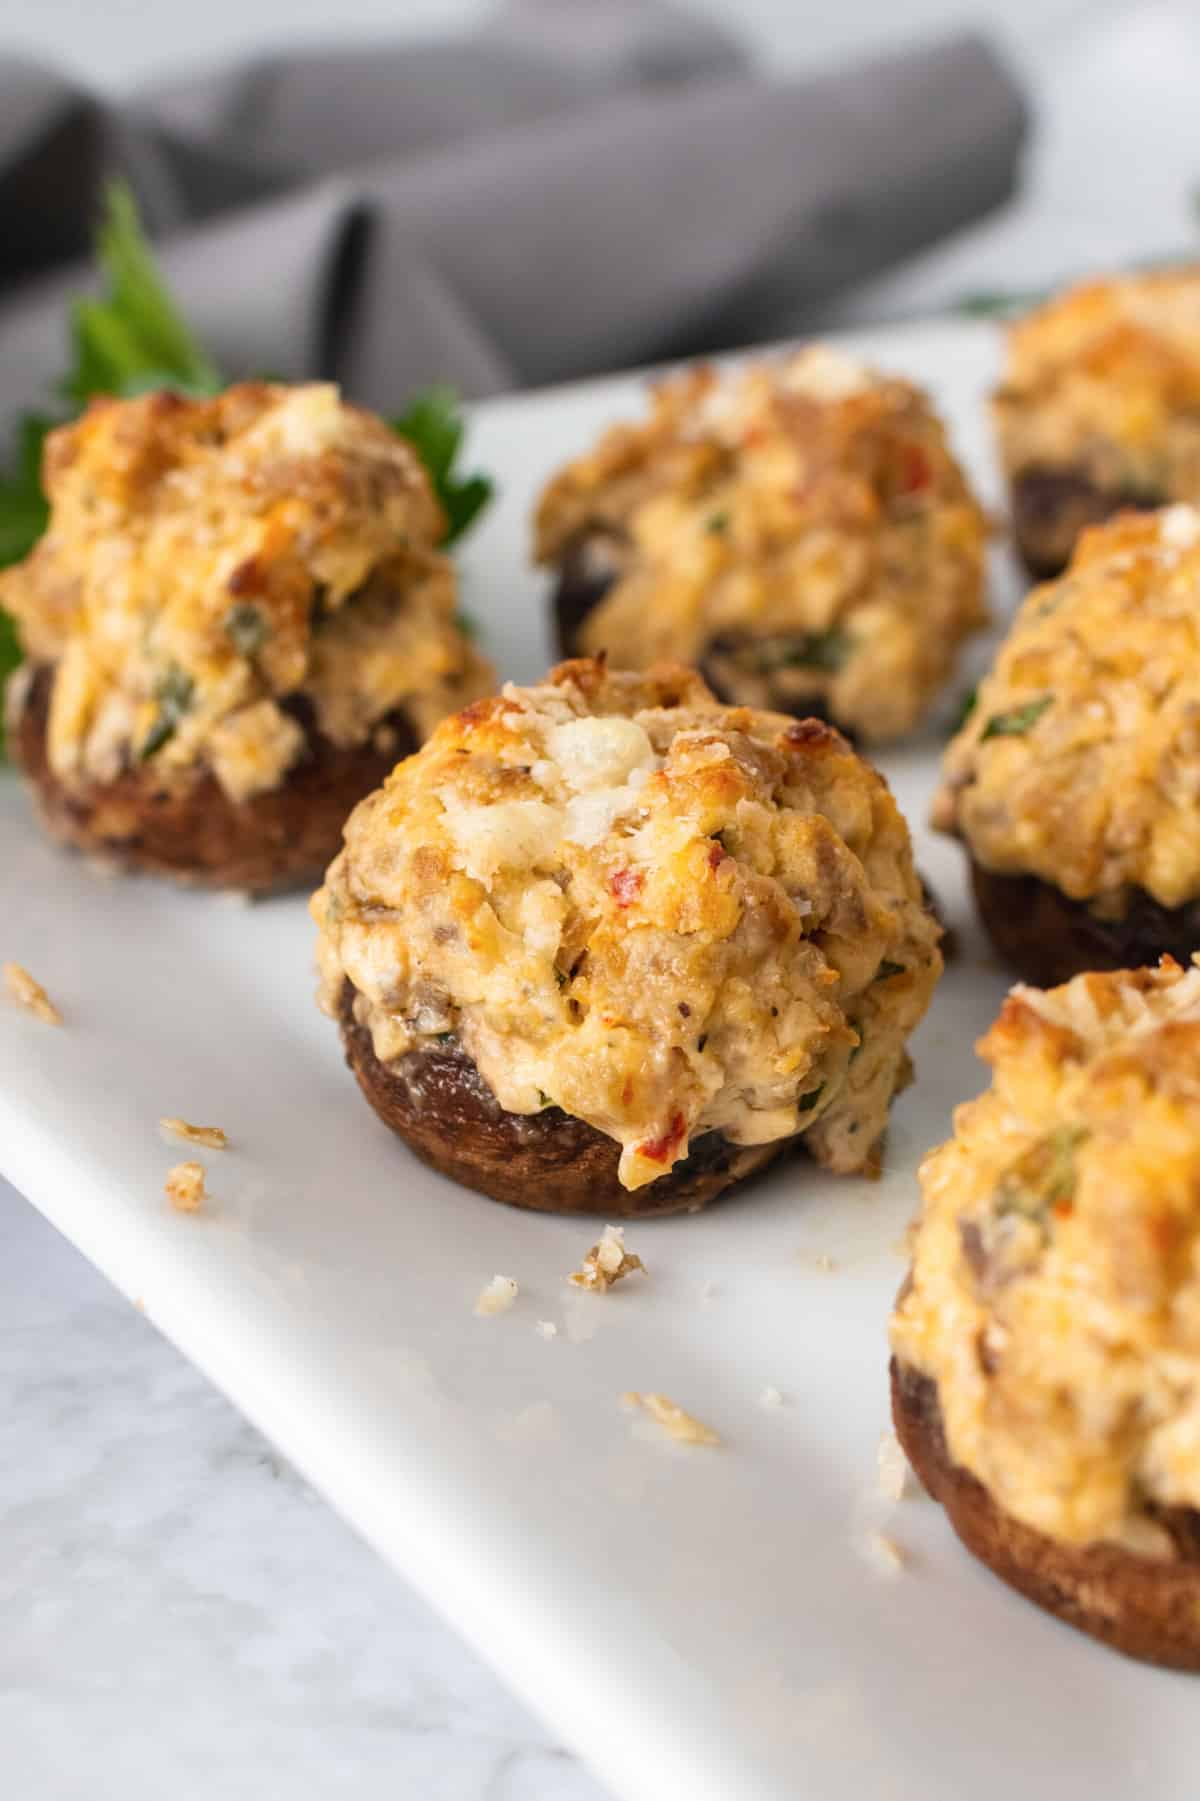 Sausage stuffed mushrooms on a white plate, garnishes with parsley